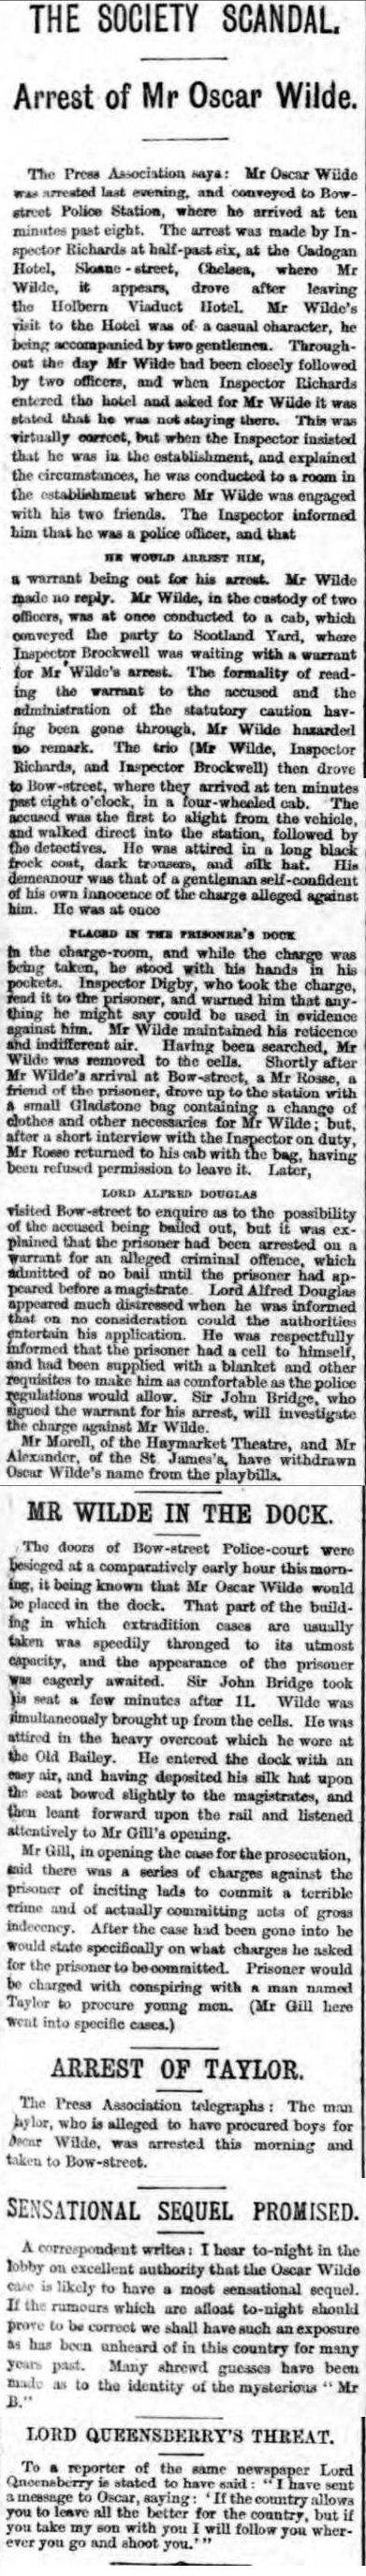 historical newspaper report about the arrest of oscar wilde at the cadogan hotel